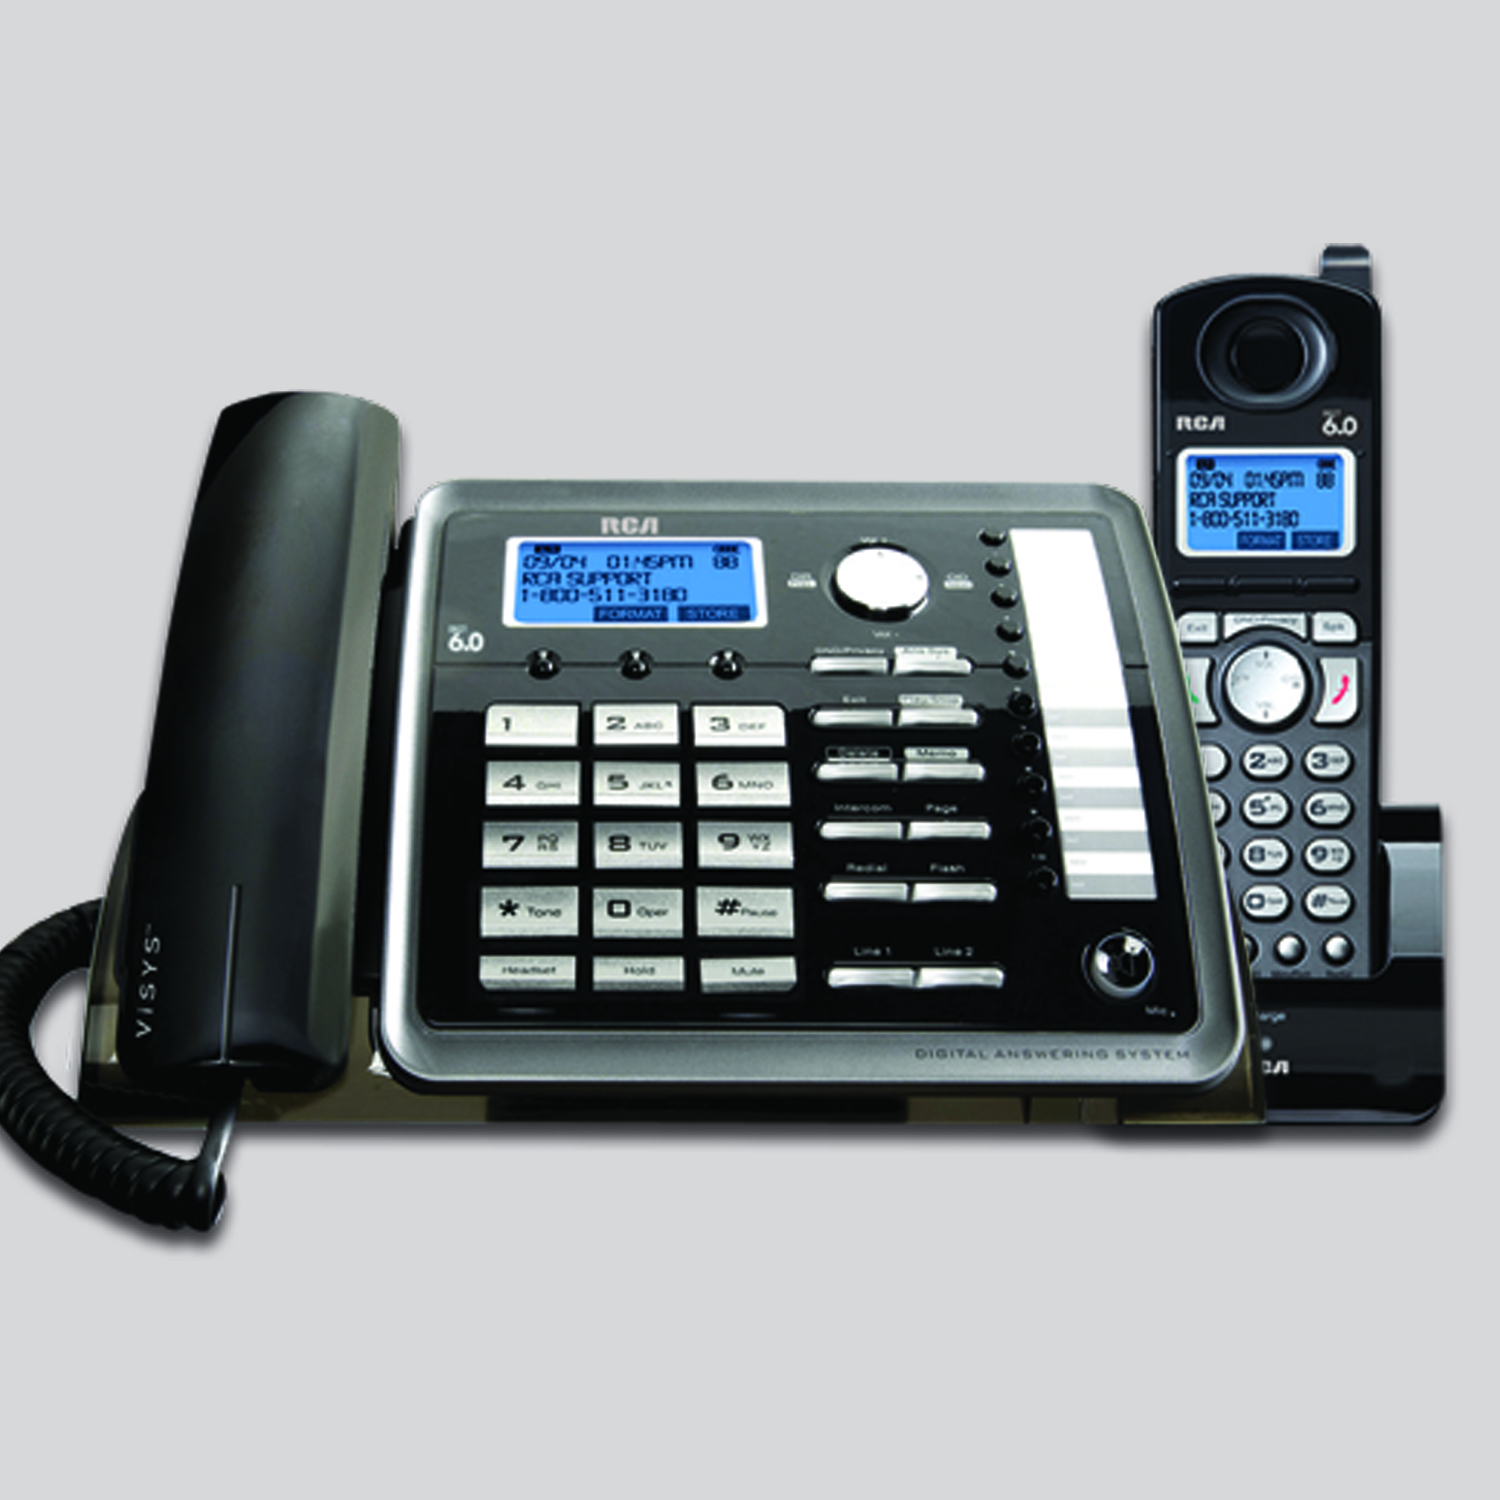 2 line phones rca by telefield rh rca4business com rca dect 6.0 cordless phone system manual rca phone system manual for a visys 25425re1